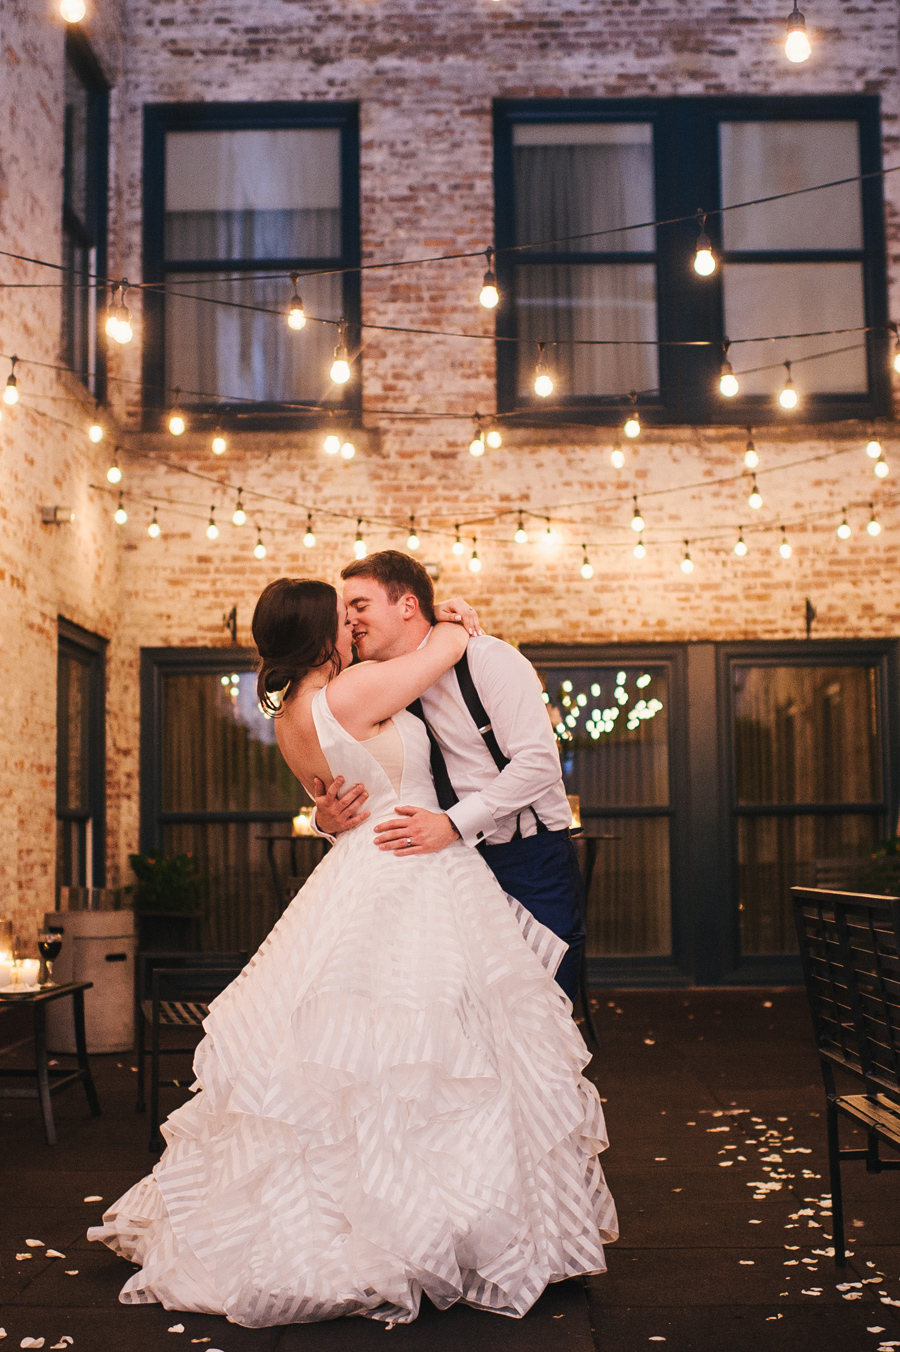 fill length of bride and groom leaning in for a kiss outdoors at night with twinkle lights in a brick wall courtyard